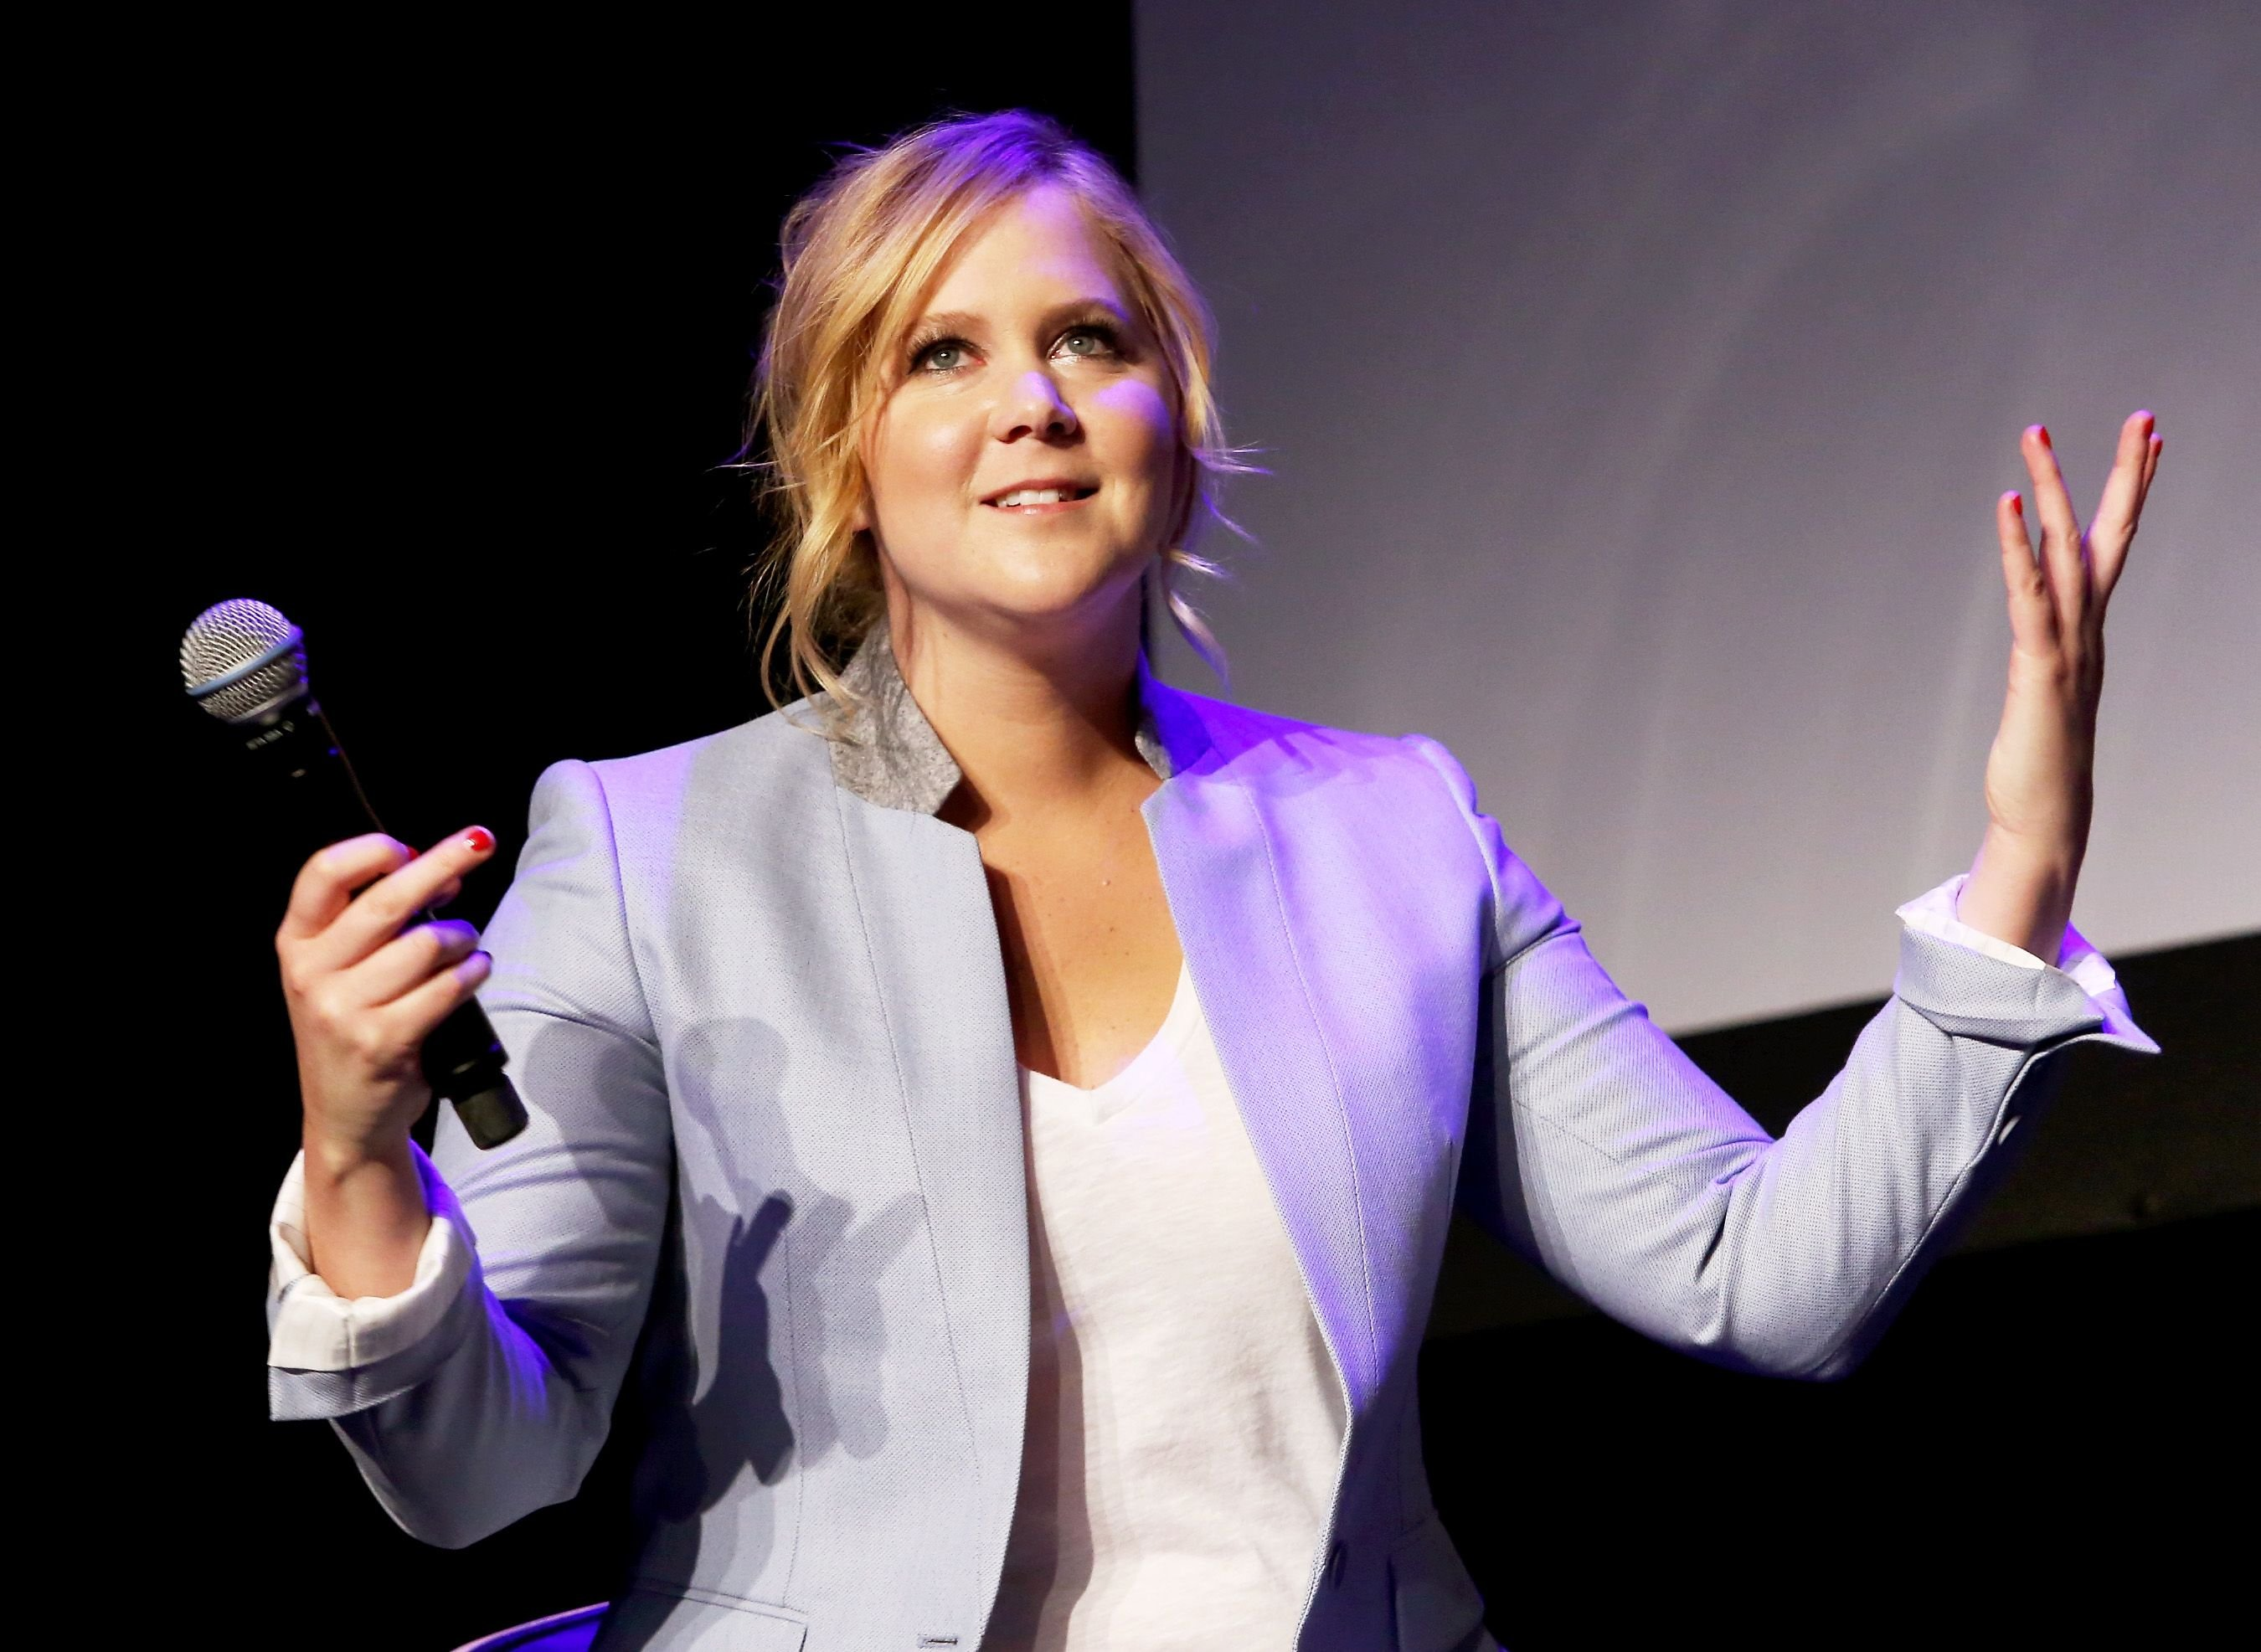 Amy Schumer at Tribeca Talks: After the Movie: Inside Amy Schumer at the 2015 Tribeca Film Festival on April 19, 2015, in New York City. | Source: Getty Images